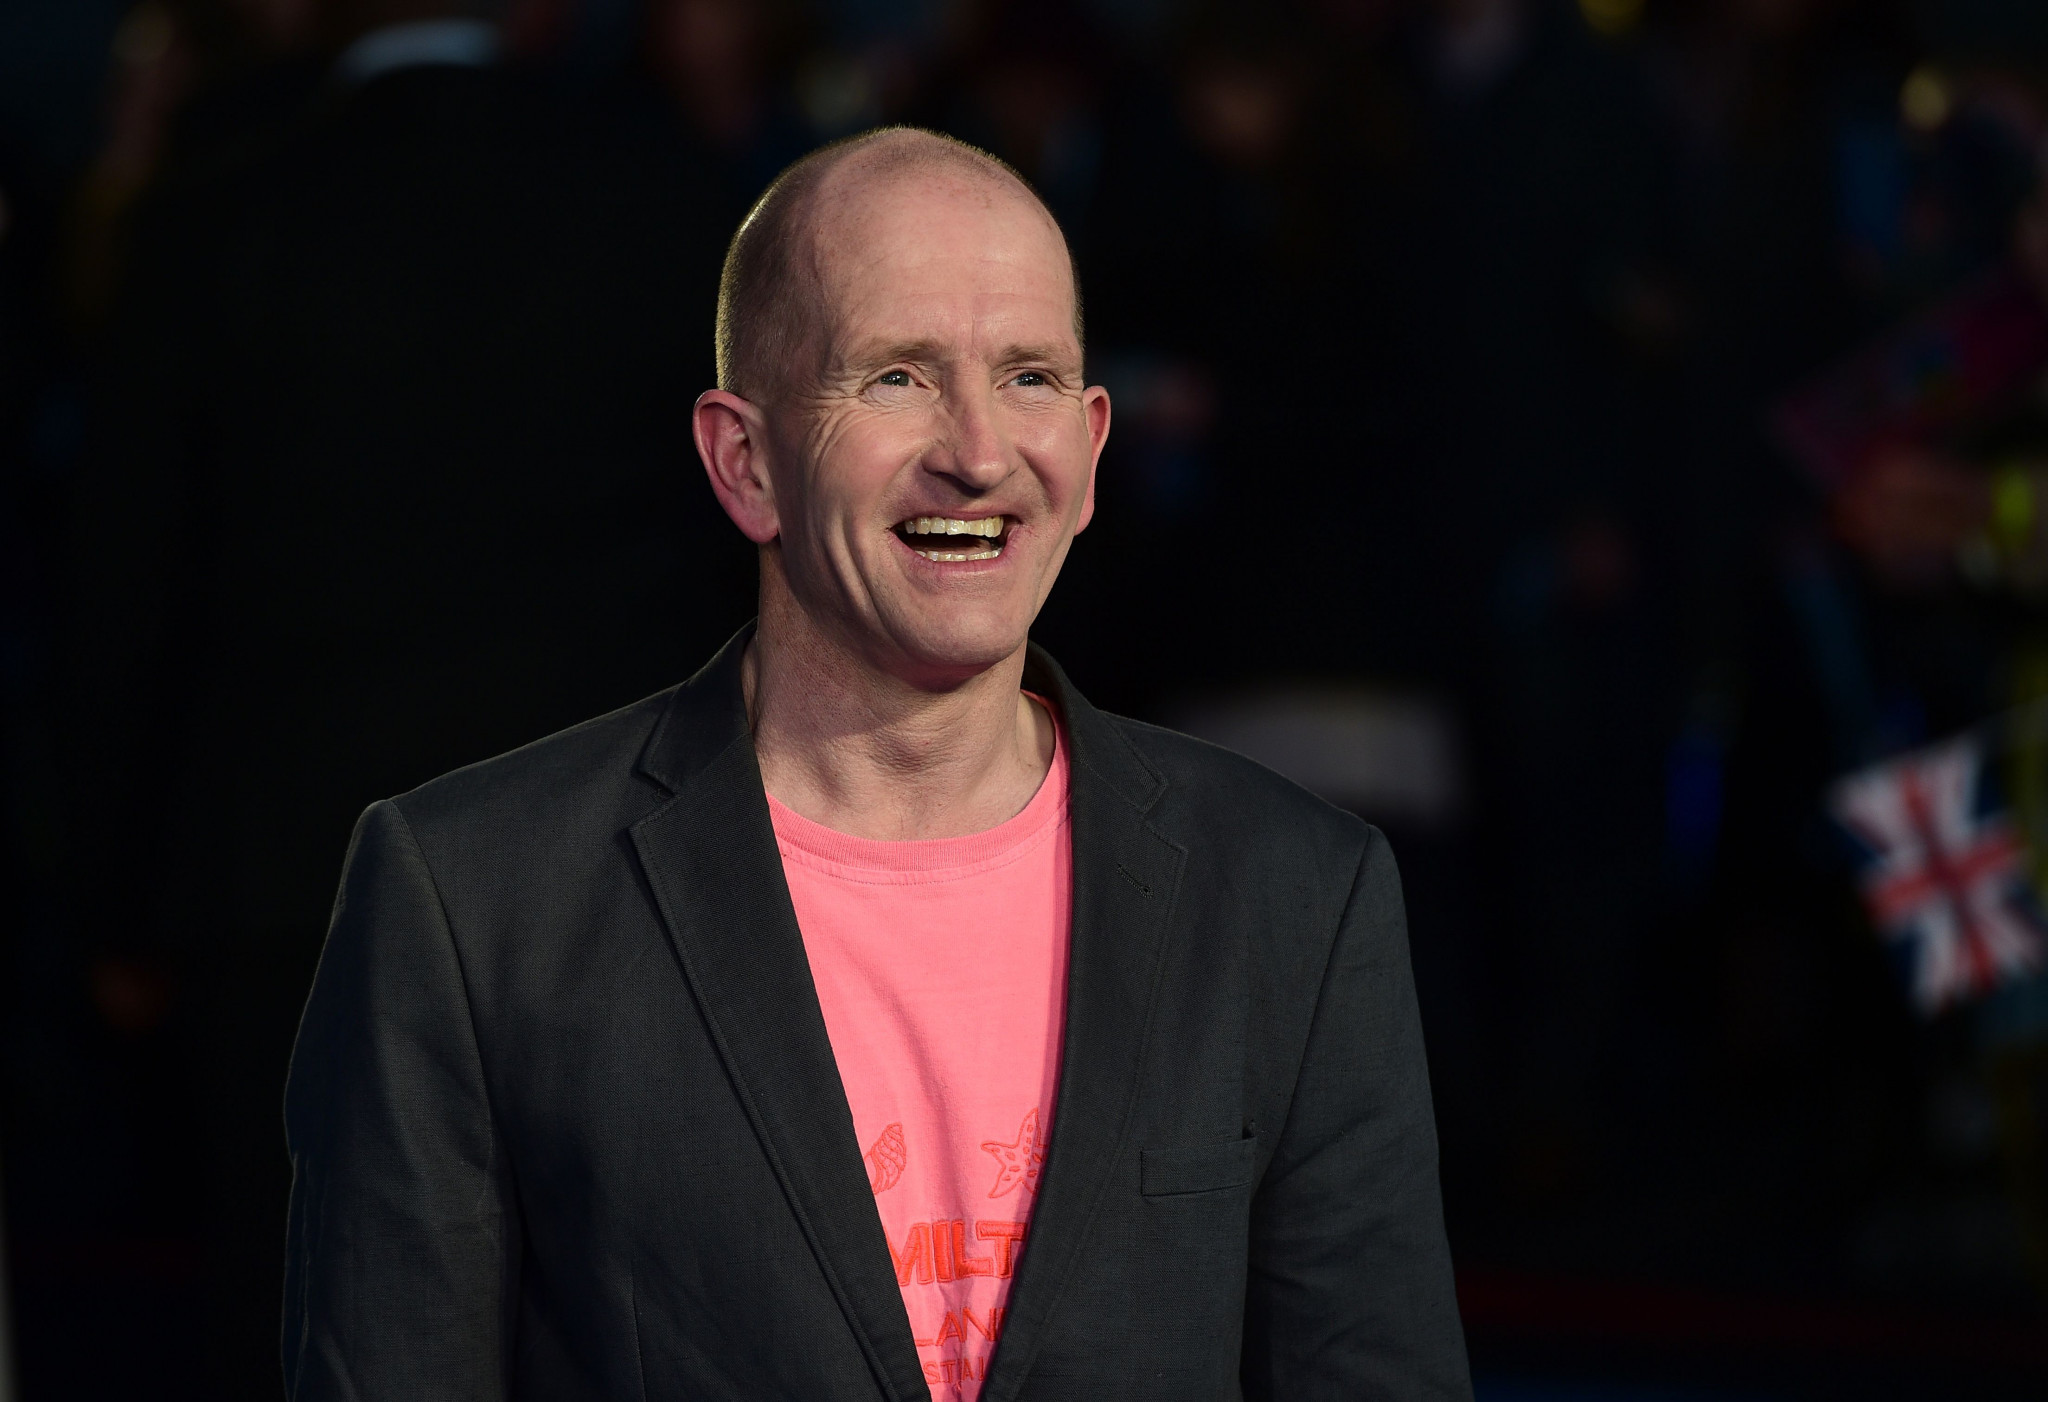 Eddie the Eagle returns to ski jumping for New Year's Day celebrations